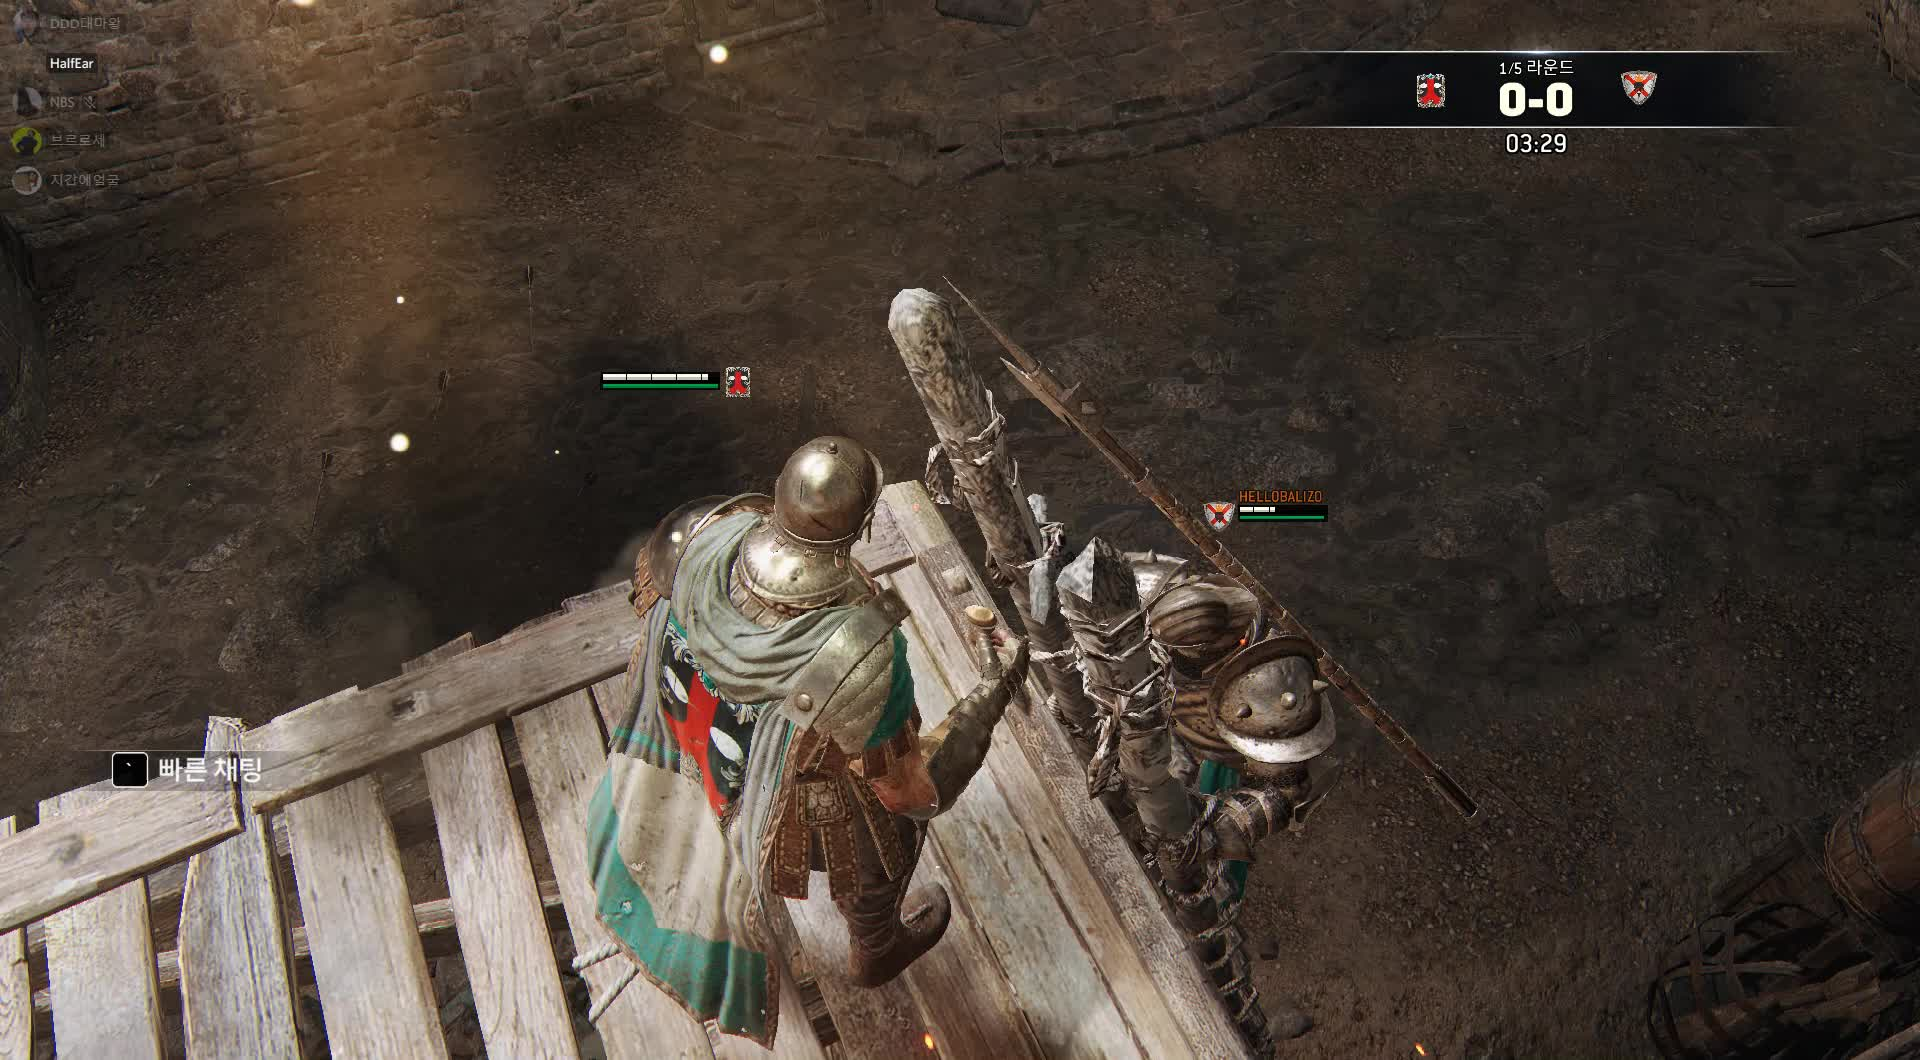 forhonor, For Honor 2019.03.30 - 21.46.08.09.DVR GIFs